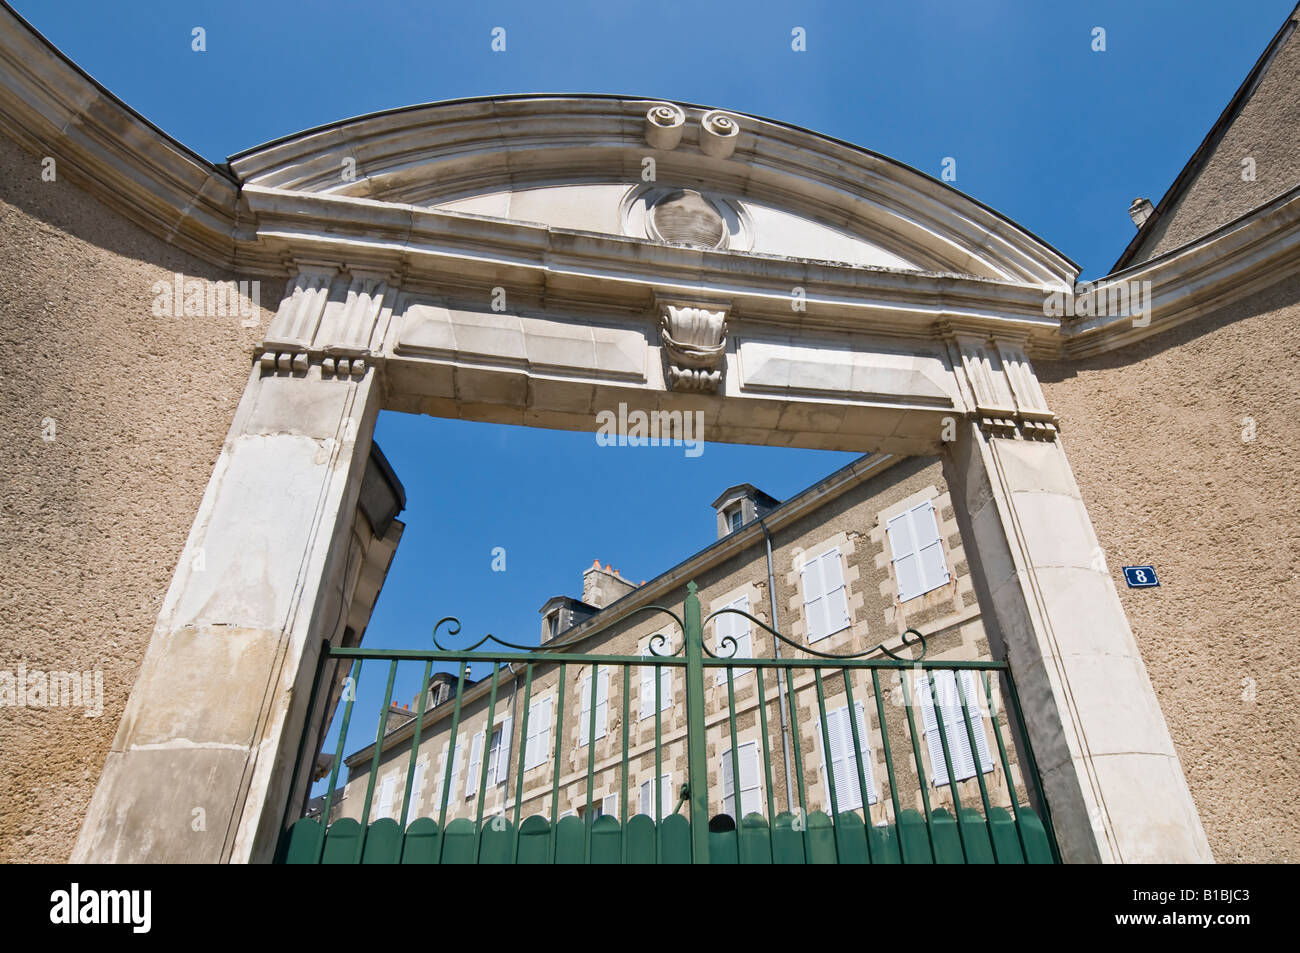 Private house behind gateway, Poitiers, Vienne, France. - Stock Image